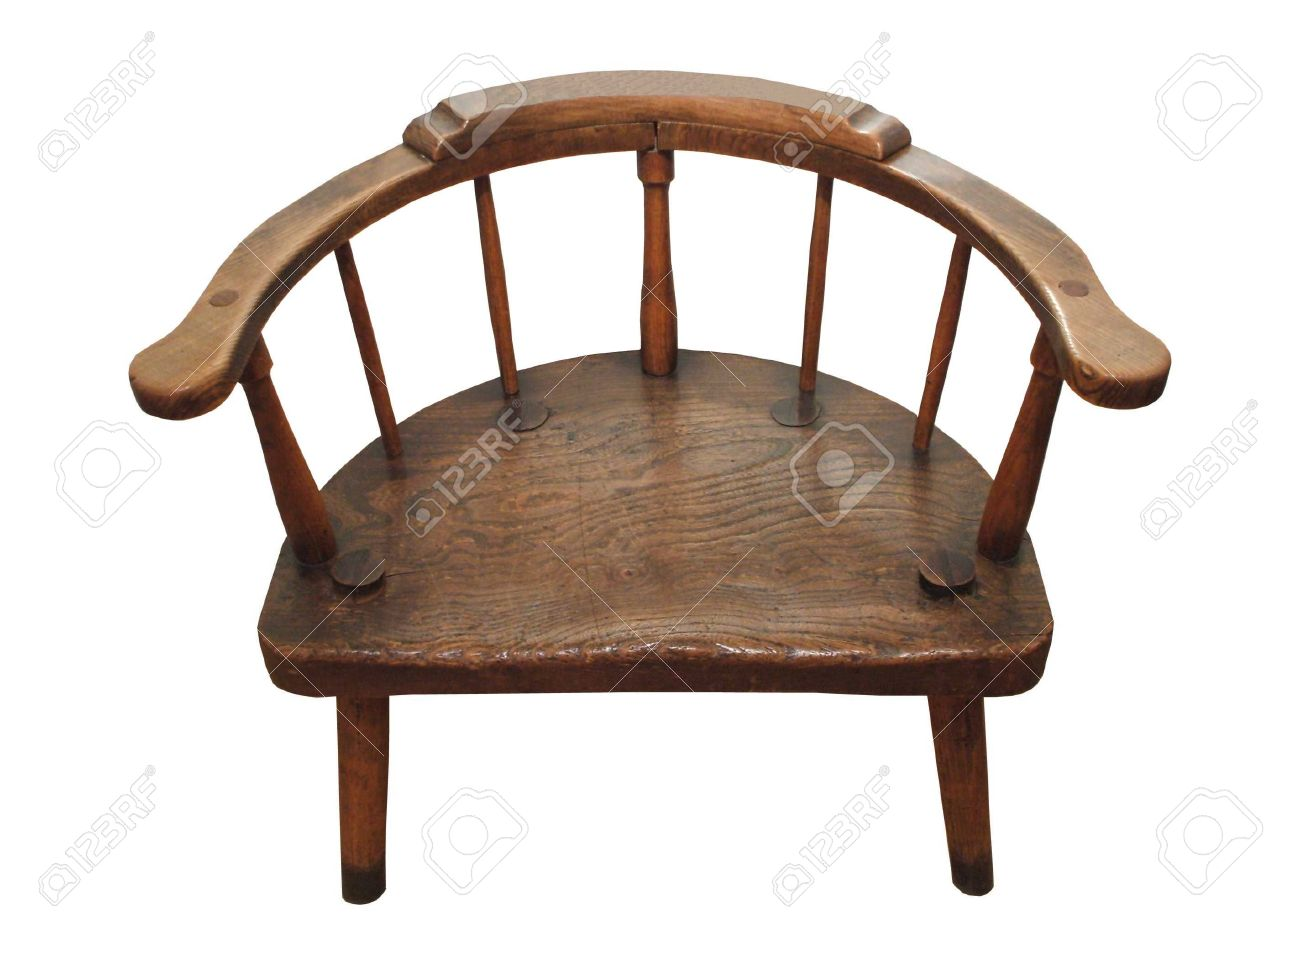 A Round Backed Wide Antique Wooden Chair. Stock Photo - 5902331 - A Round  Backed - Antique Round Back Chairs Antique Furniture